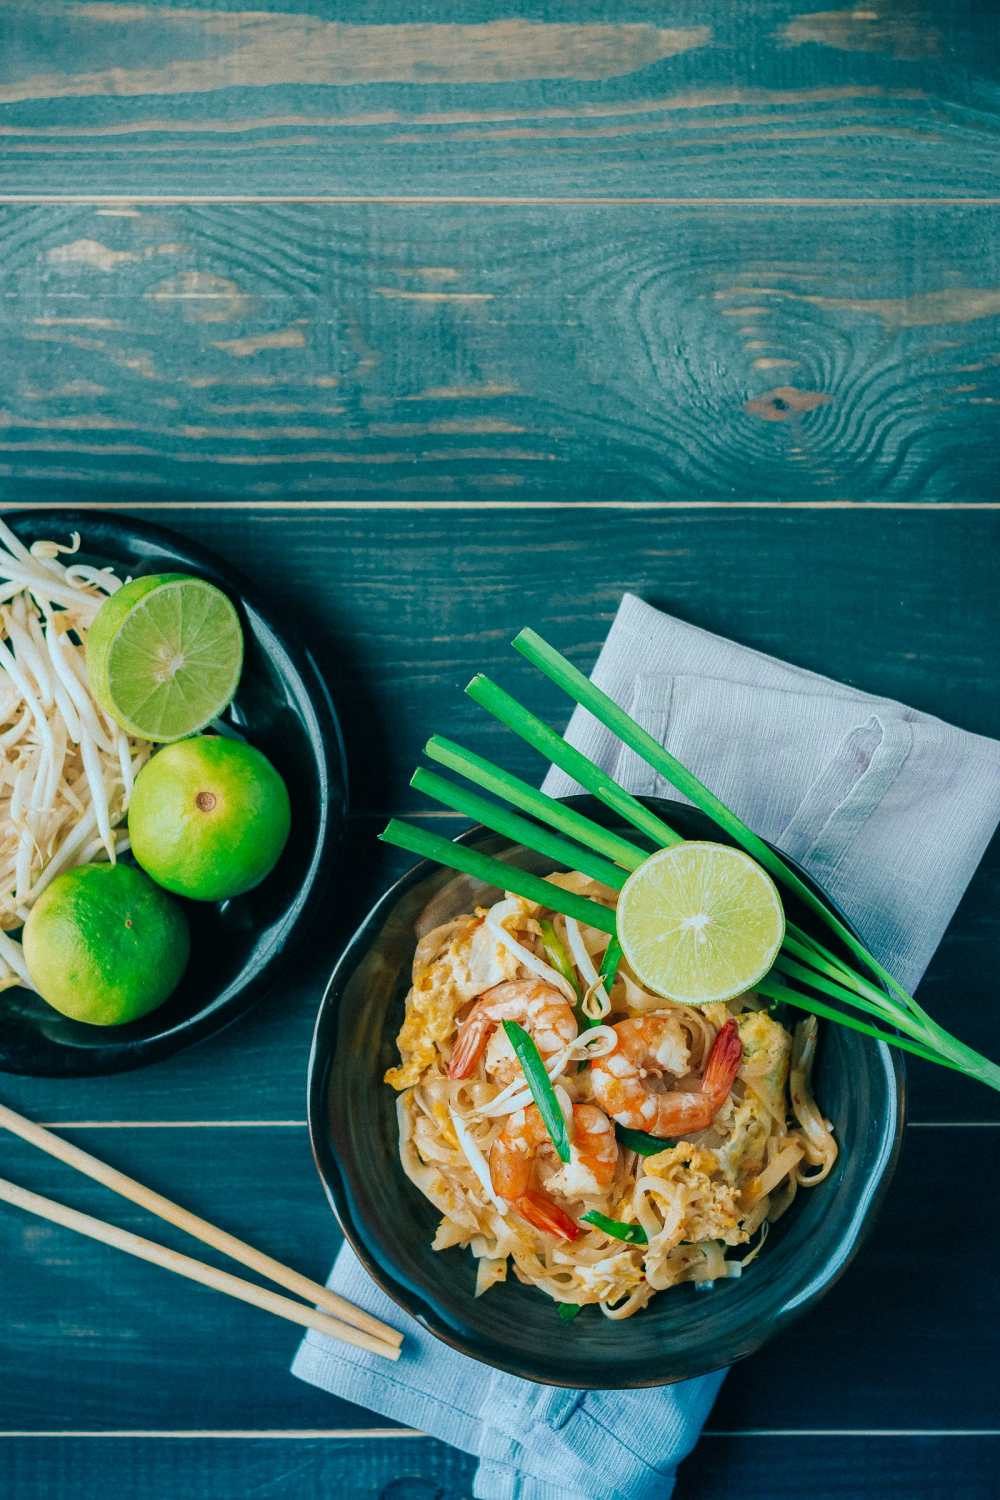 12 Tasty Thai Dishes And Food to Eat When in Thailand (3)